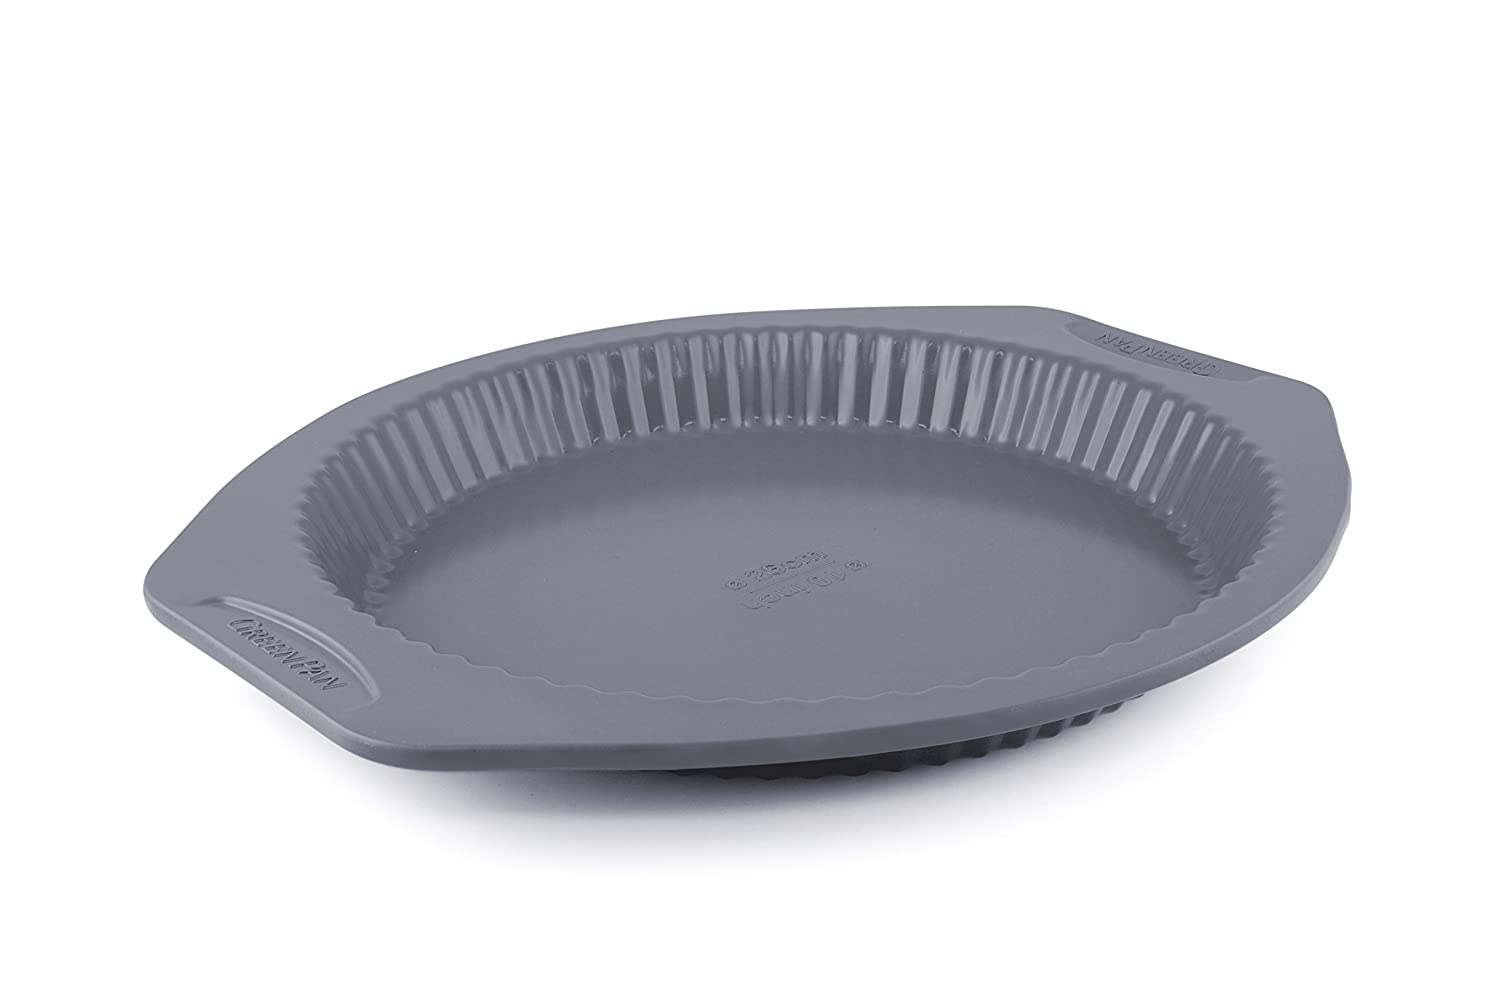 GreenPan 10 Inch Carbon Steel Non-Stick Ceramic Tart Pan BW000007-004